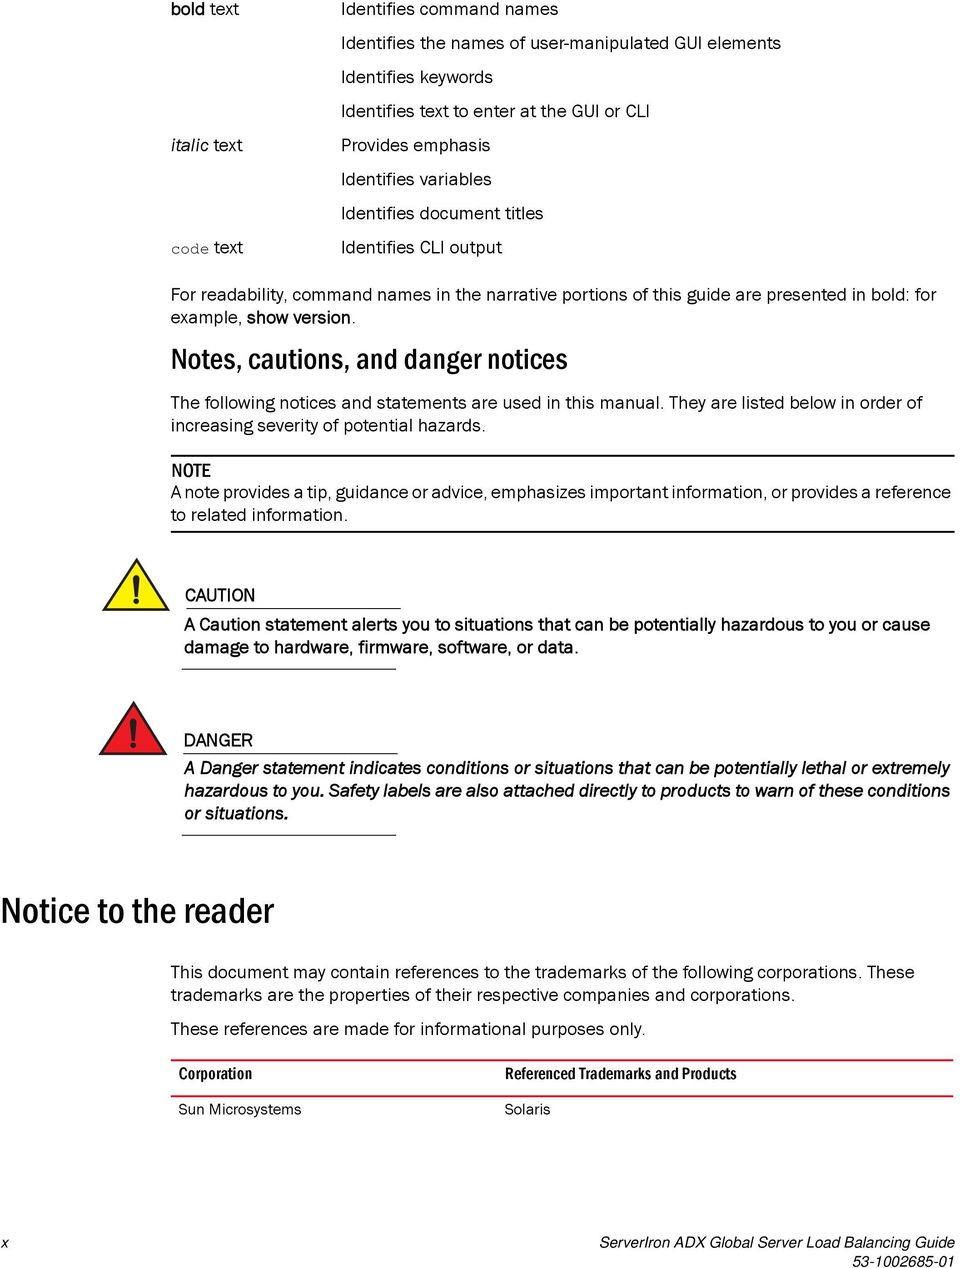 Notes, cautions, and danger notices The following notices and statements are used in this manual. They are listed below in order of increasing severity of potential hazards.